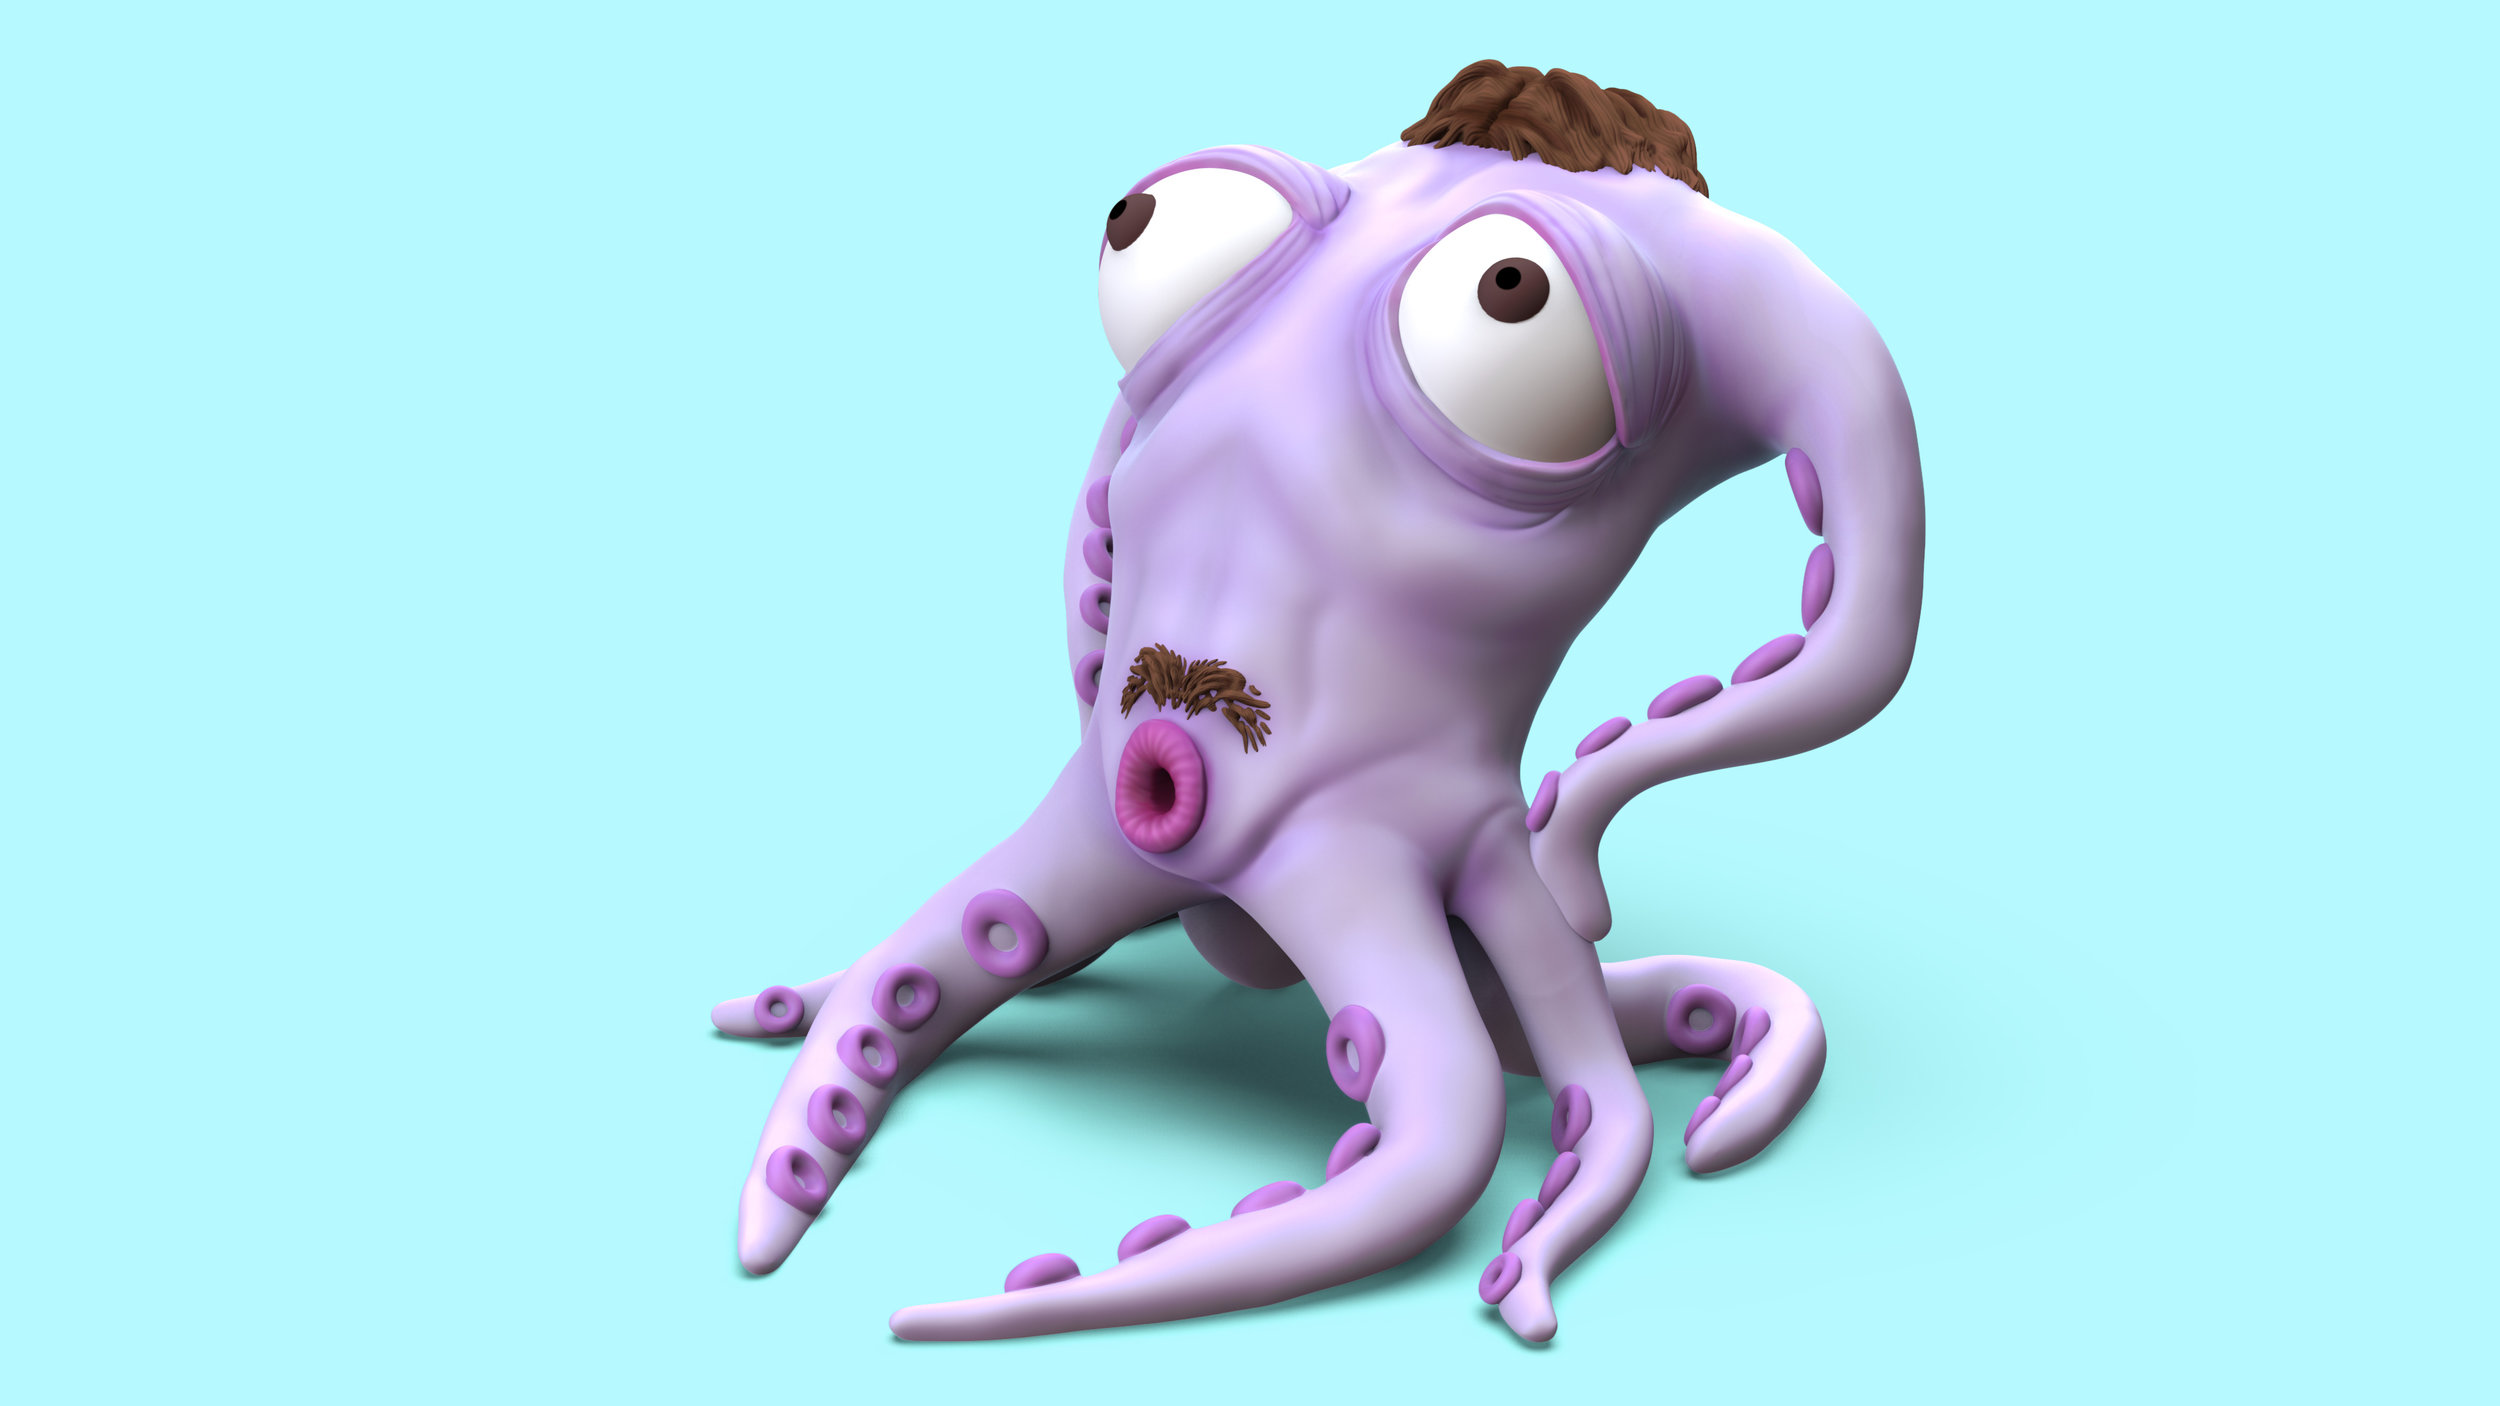 dapper_octopus-Camera-for-Studio-2.jpg